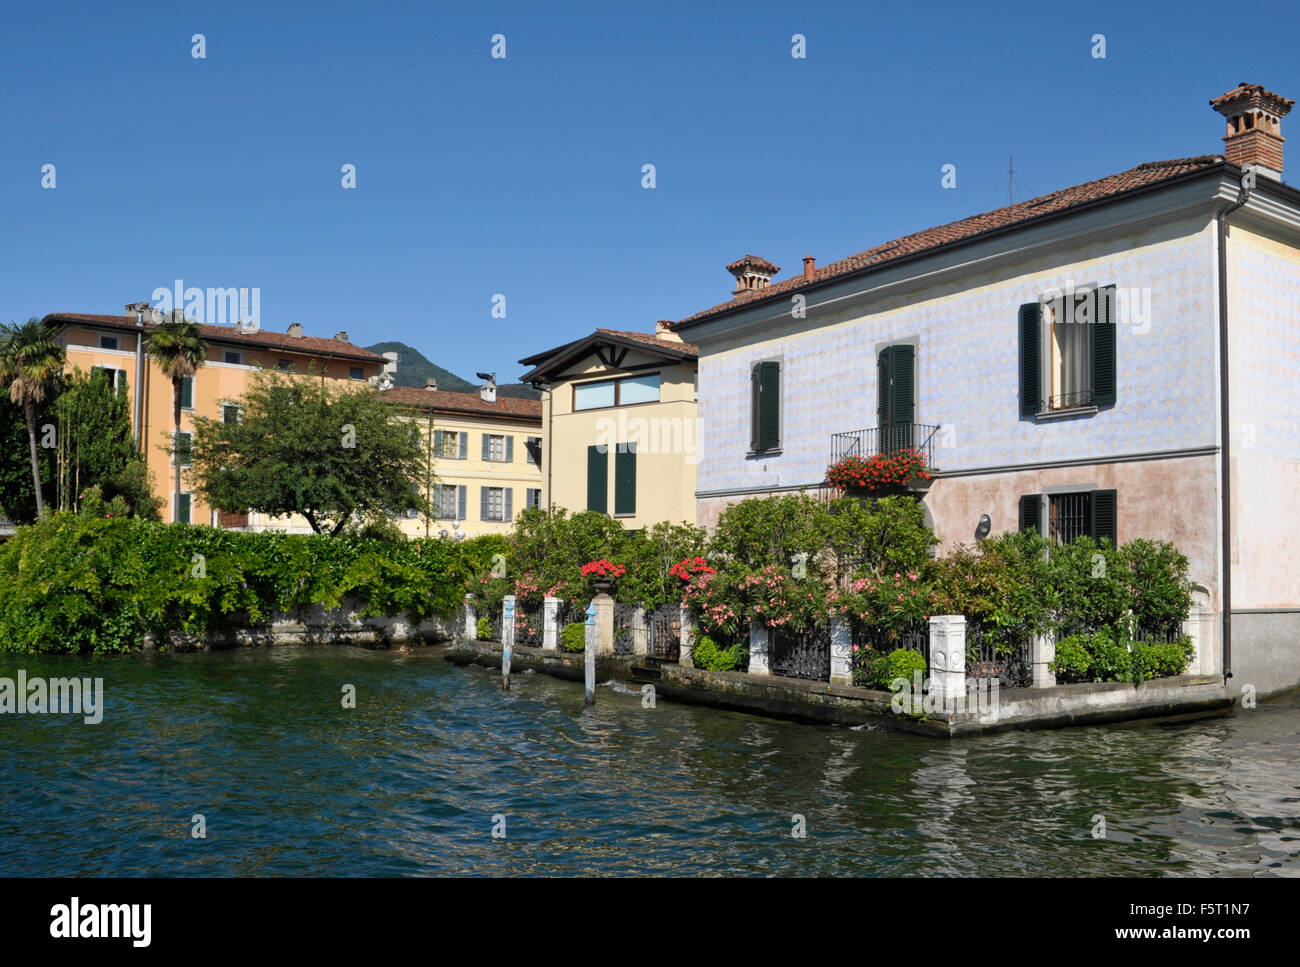 houses on the shore of Lake Iseo in Iseo town - Lombardy - Italy - Stock Image